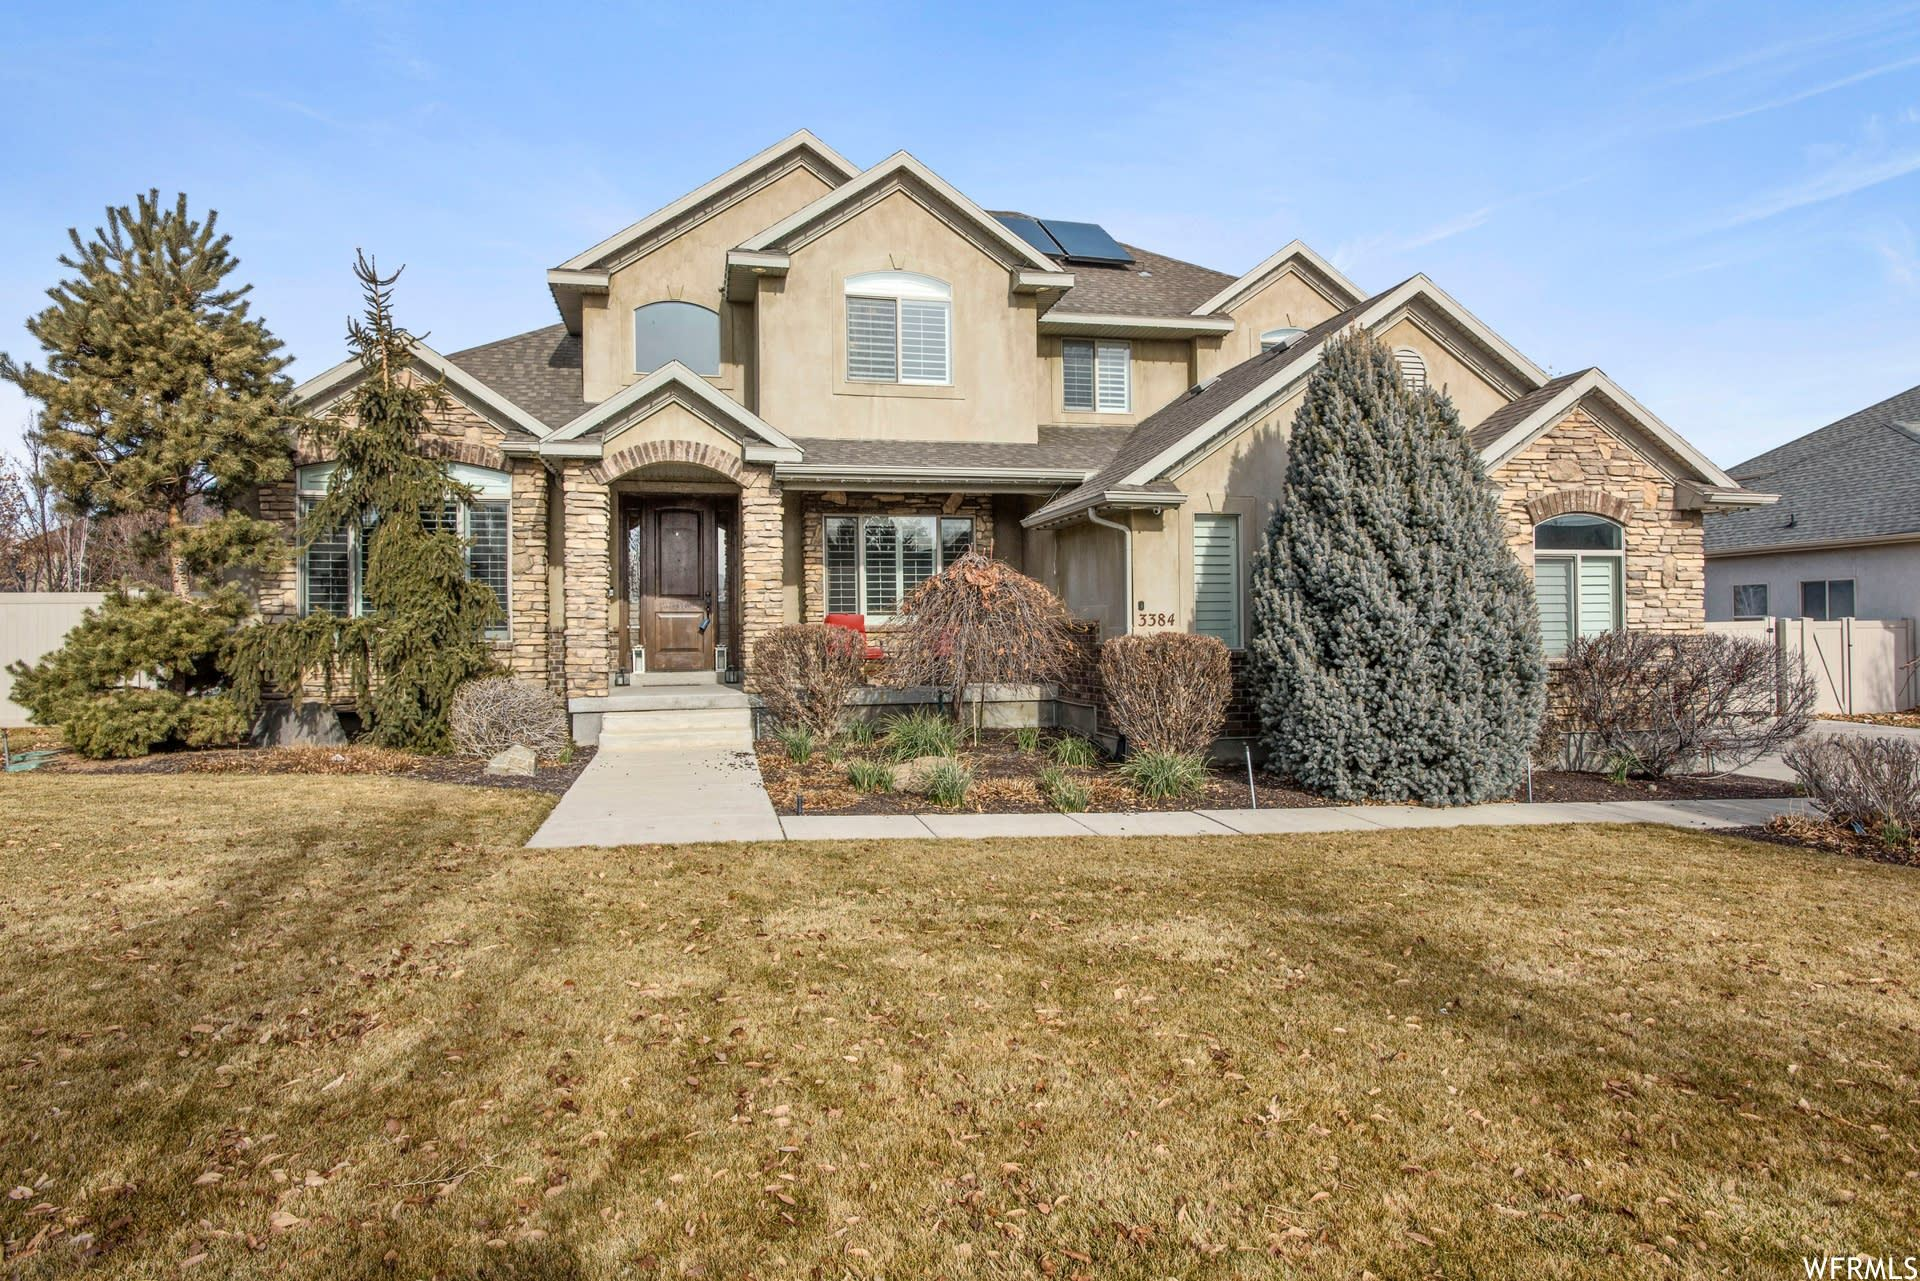 Photo of 3384 W 10305 S, South Jordan, UT 84095 (MLS # 1719949)